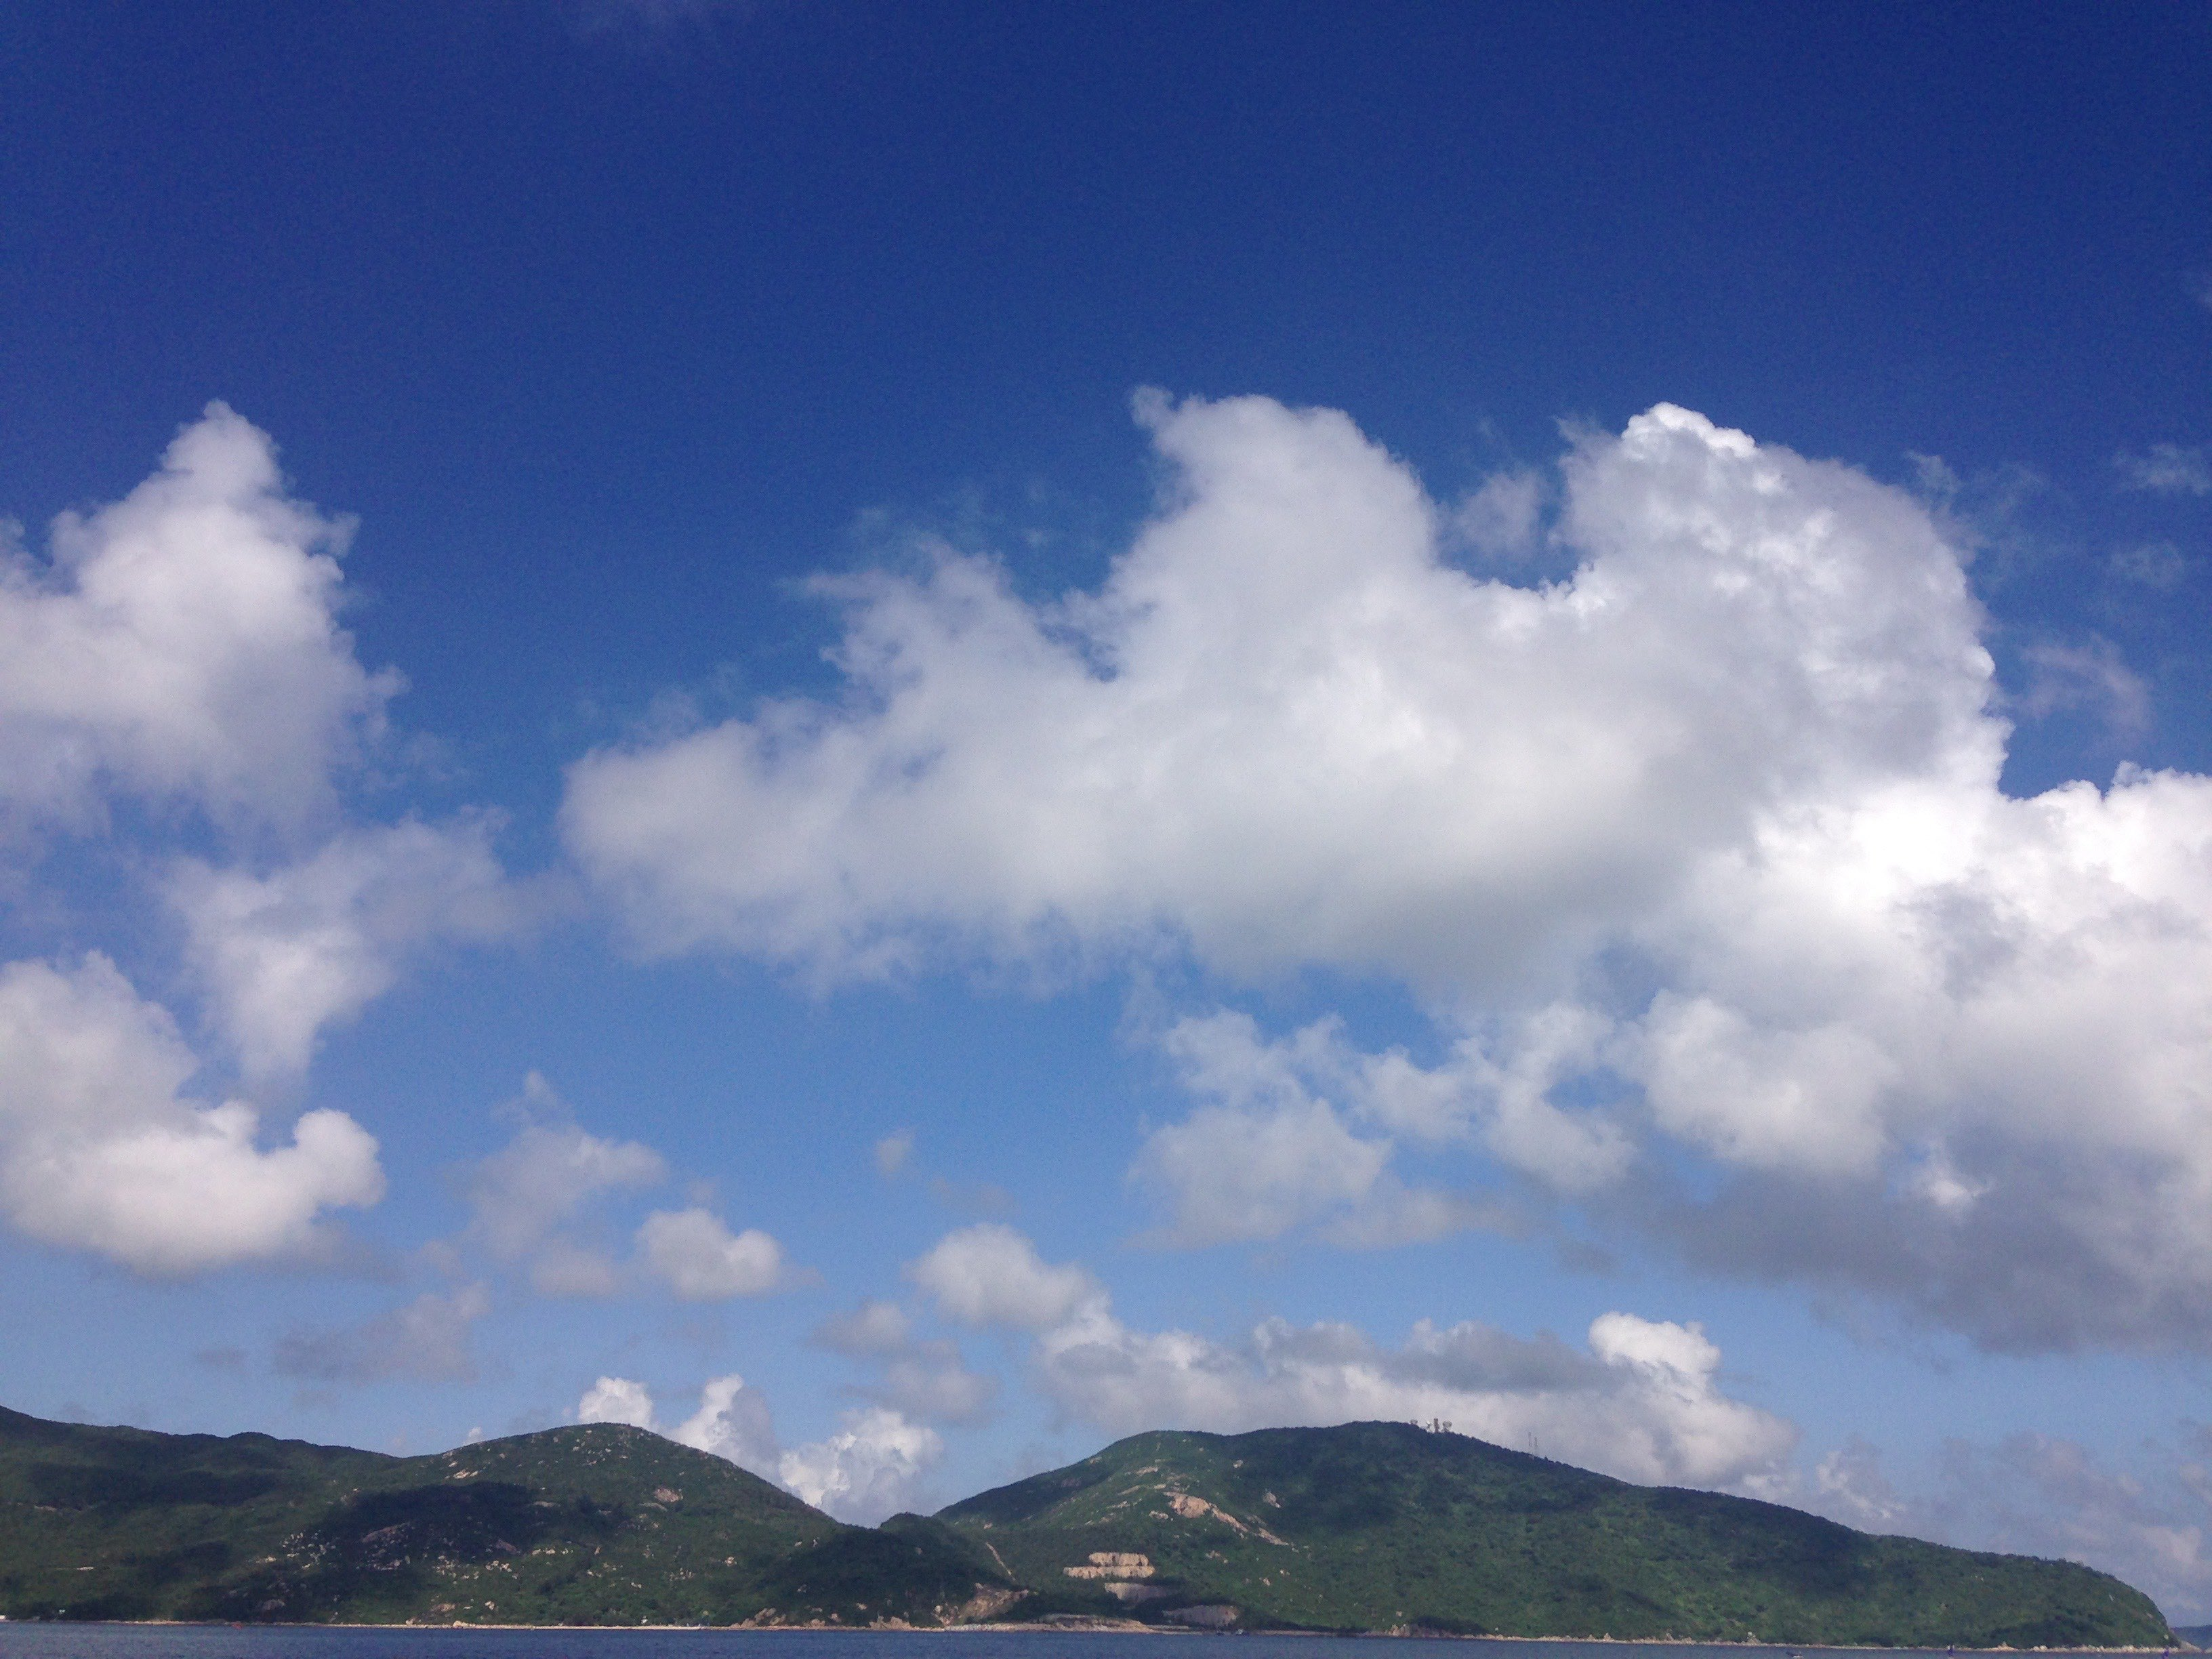 Hills, blue sky and clouds.